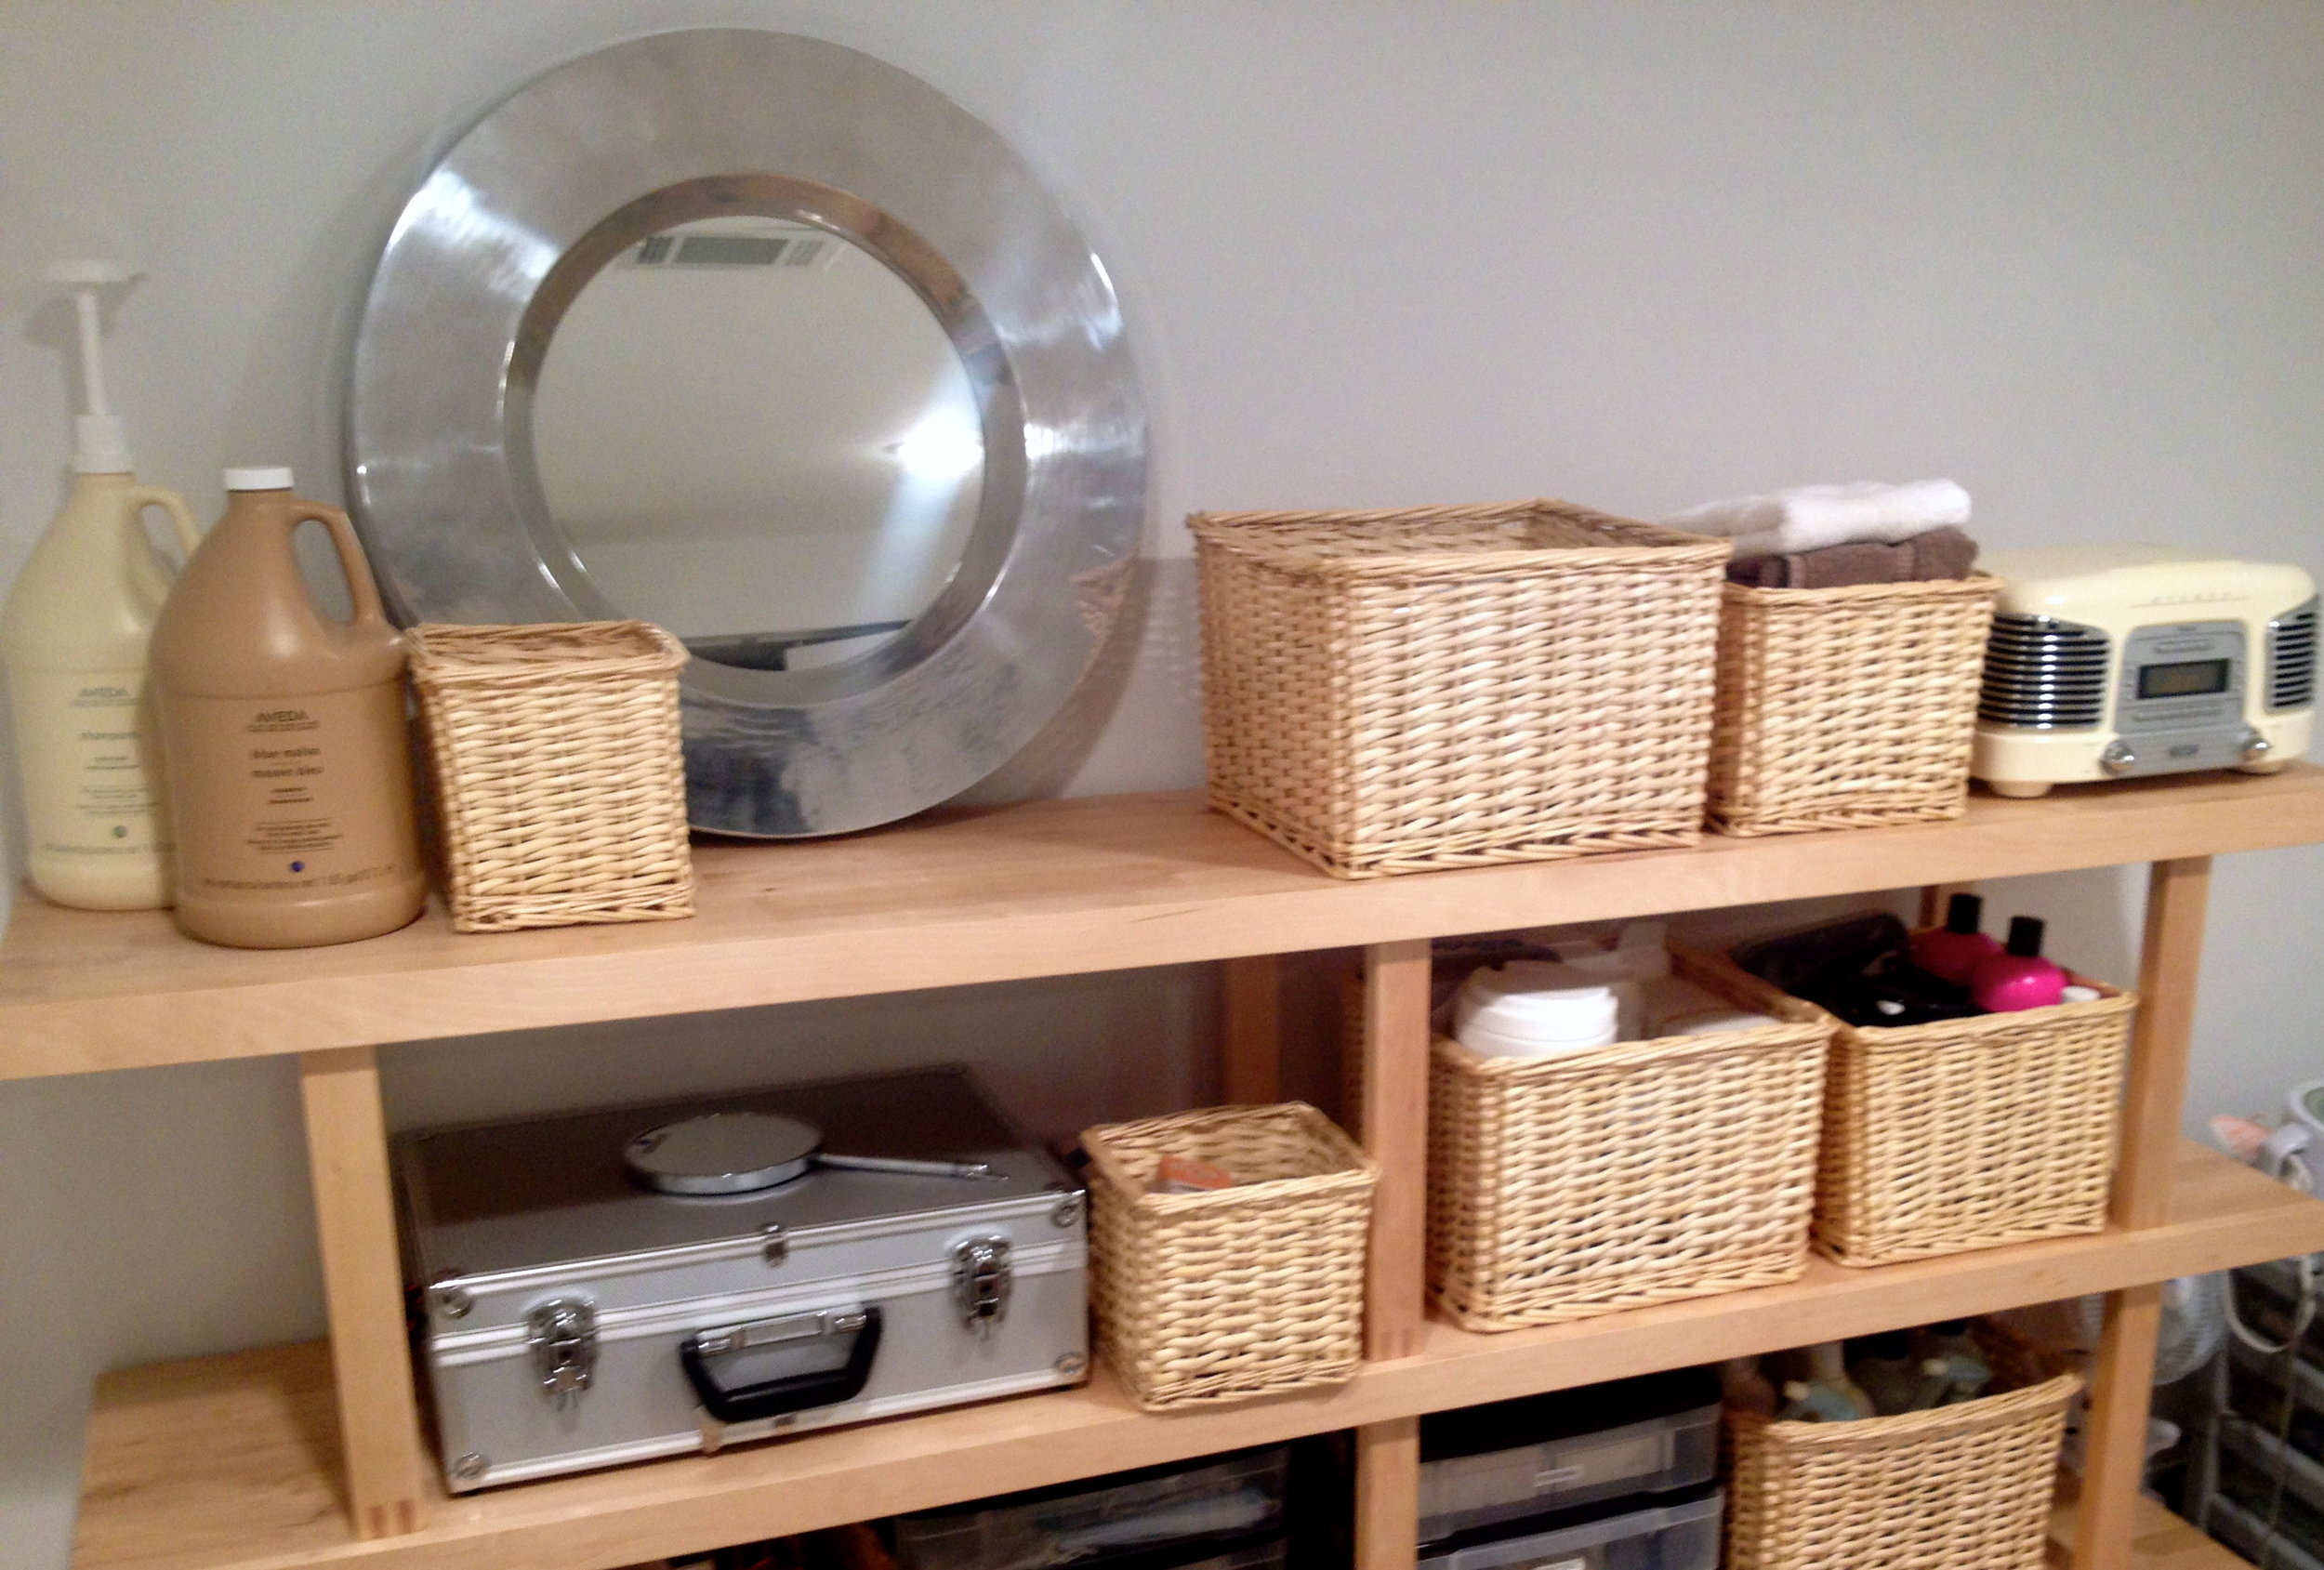 Baskets from Ikea, and one of the Aluminum cases I got at Harbor Freight